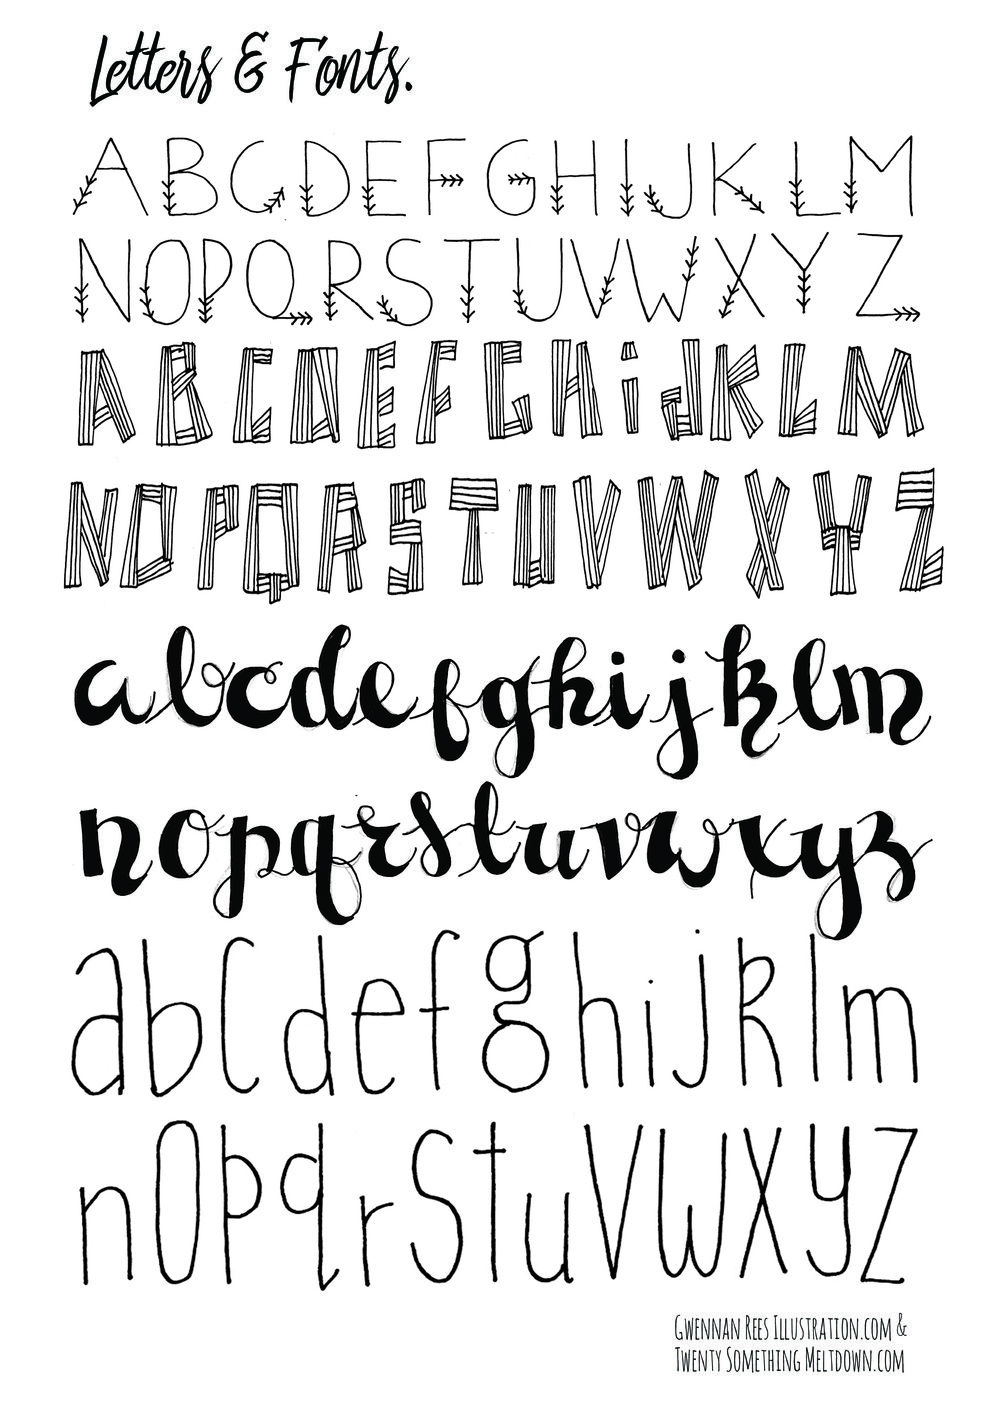 CLICK TO DOWNLOAD LETTERS AND FONTS PAGE 2